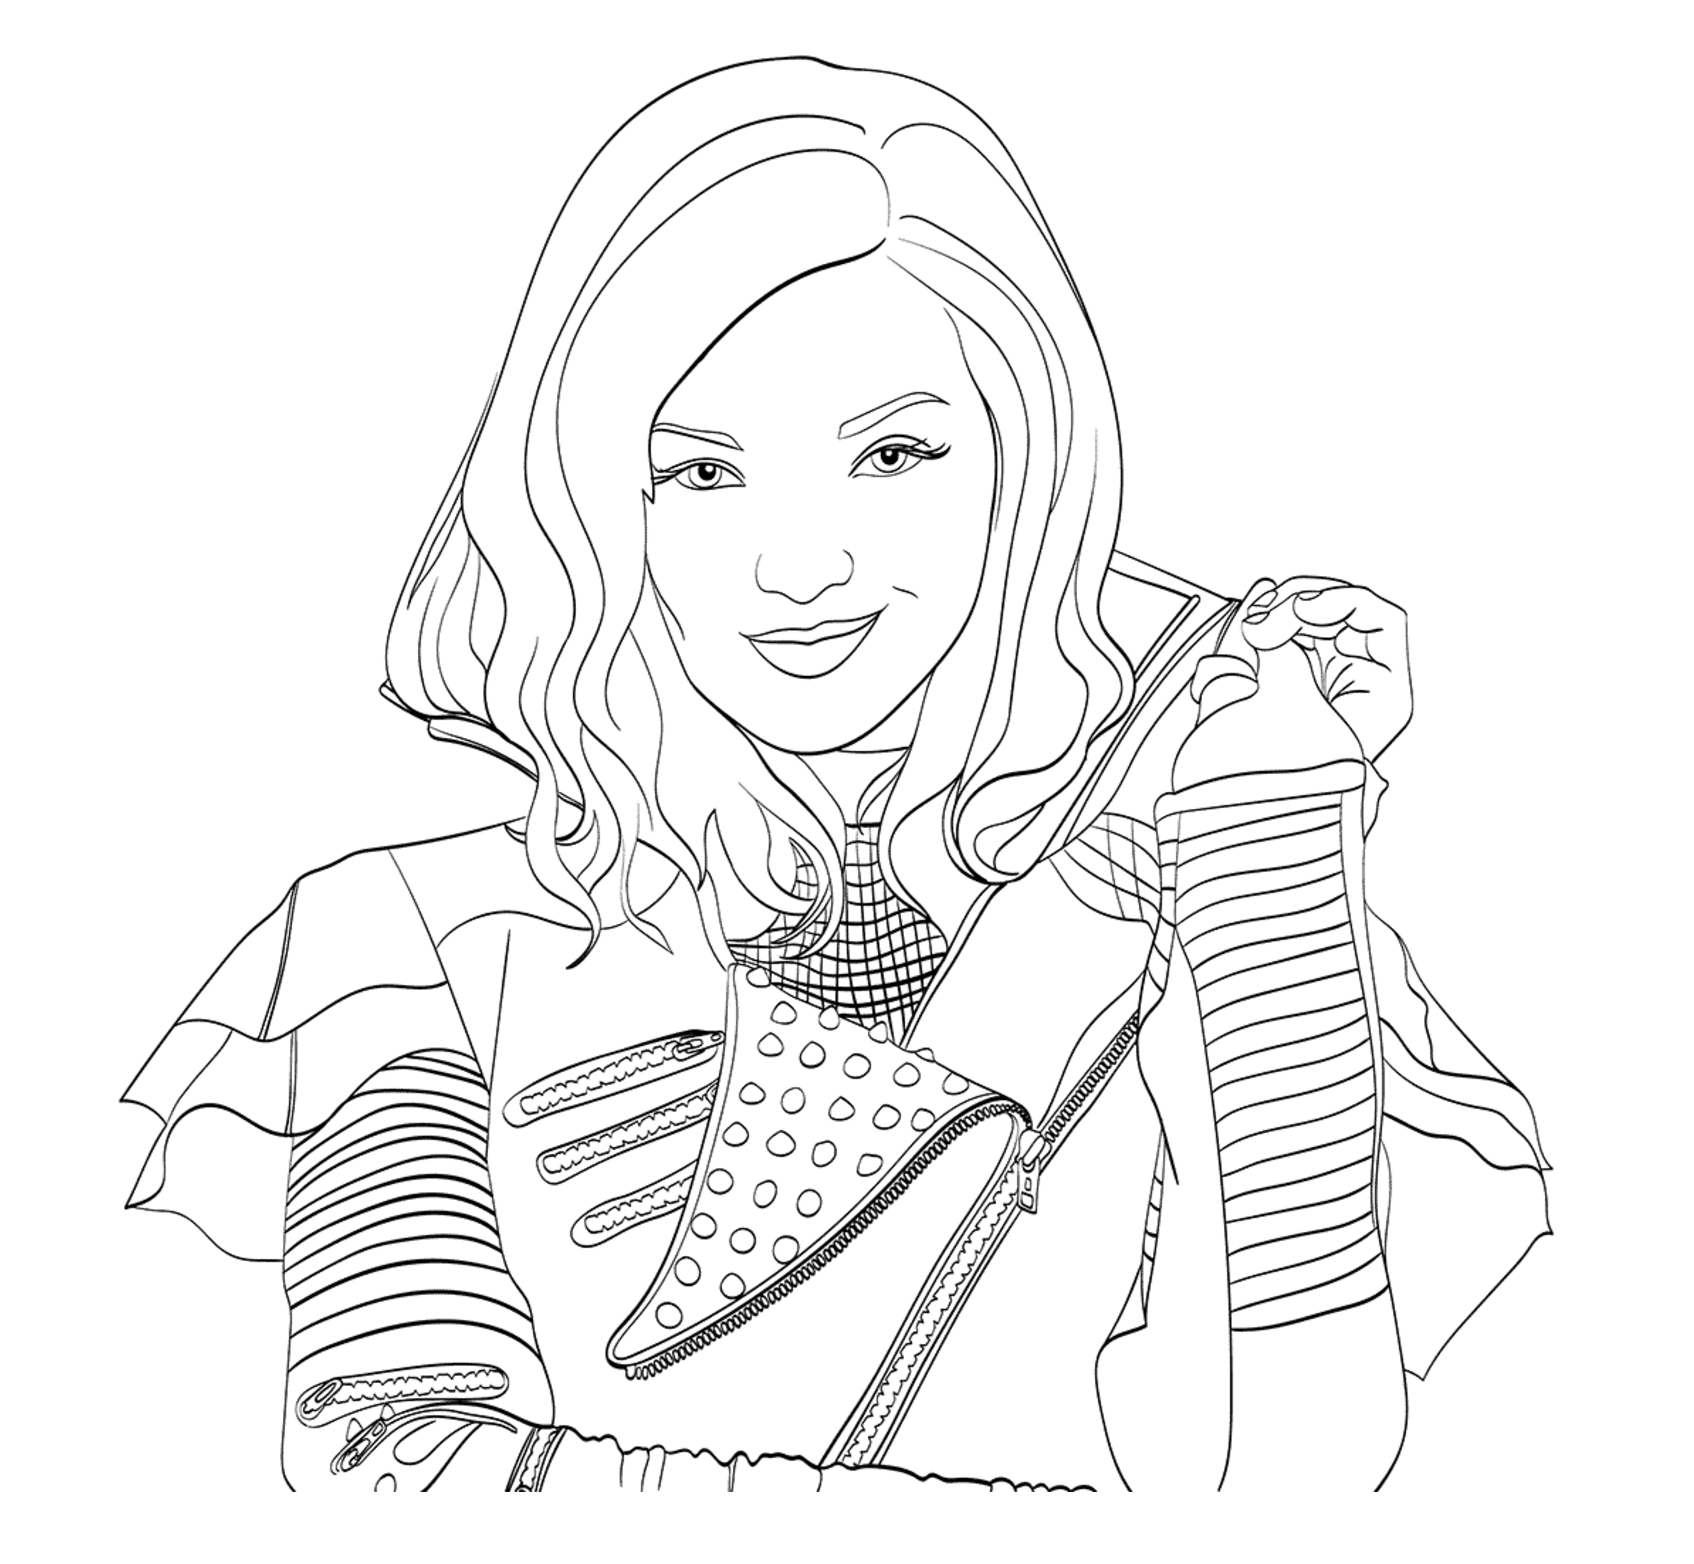 Free The Descendants coloring page to print and color